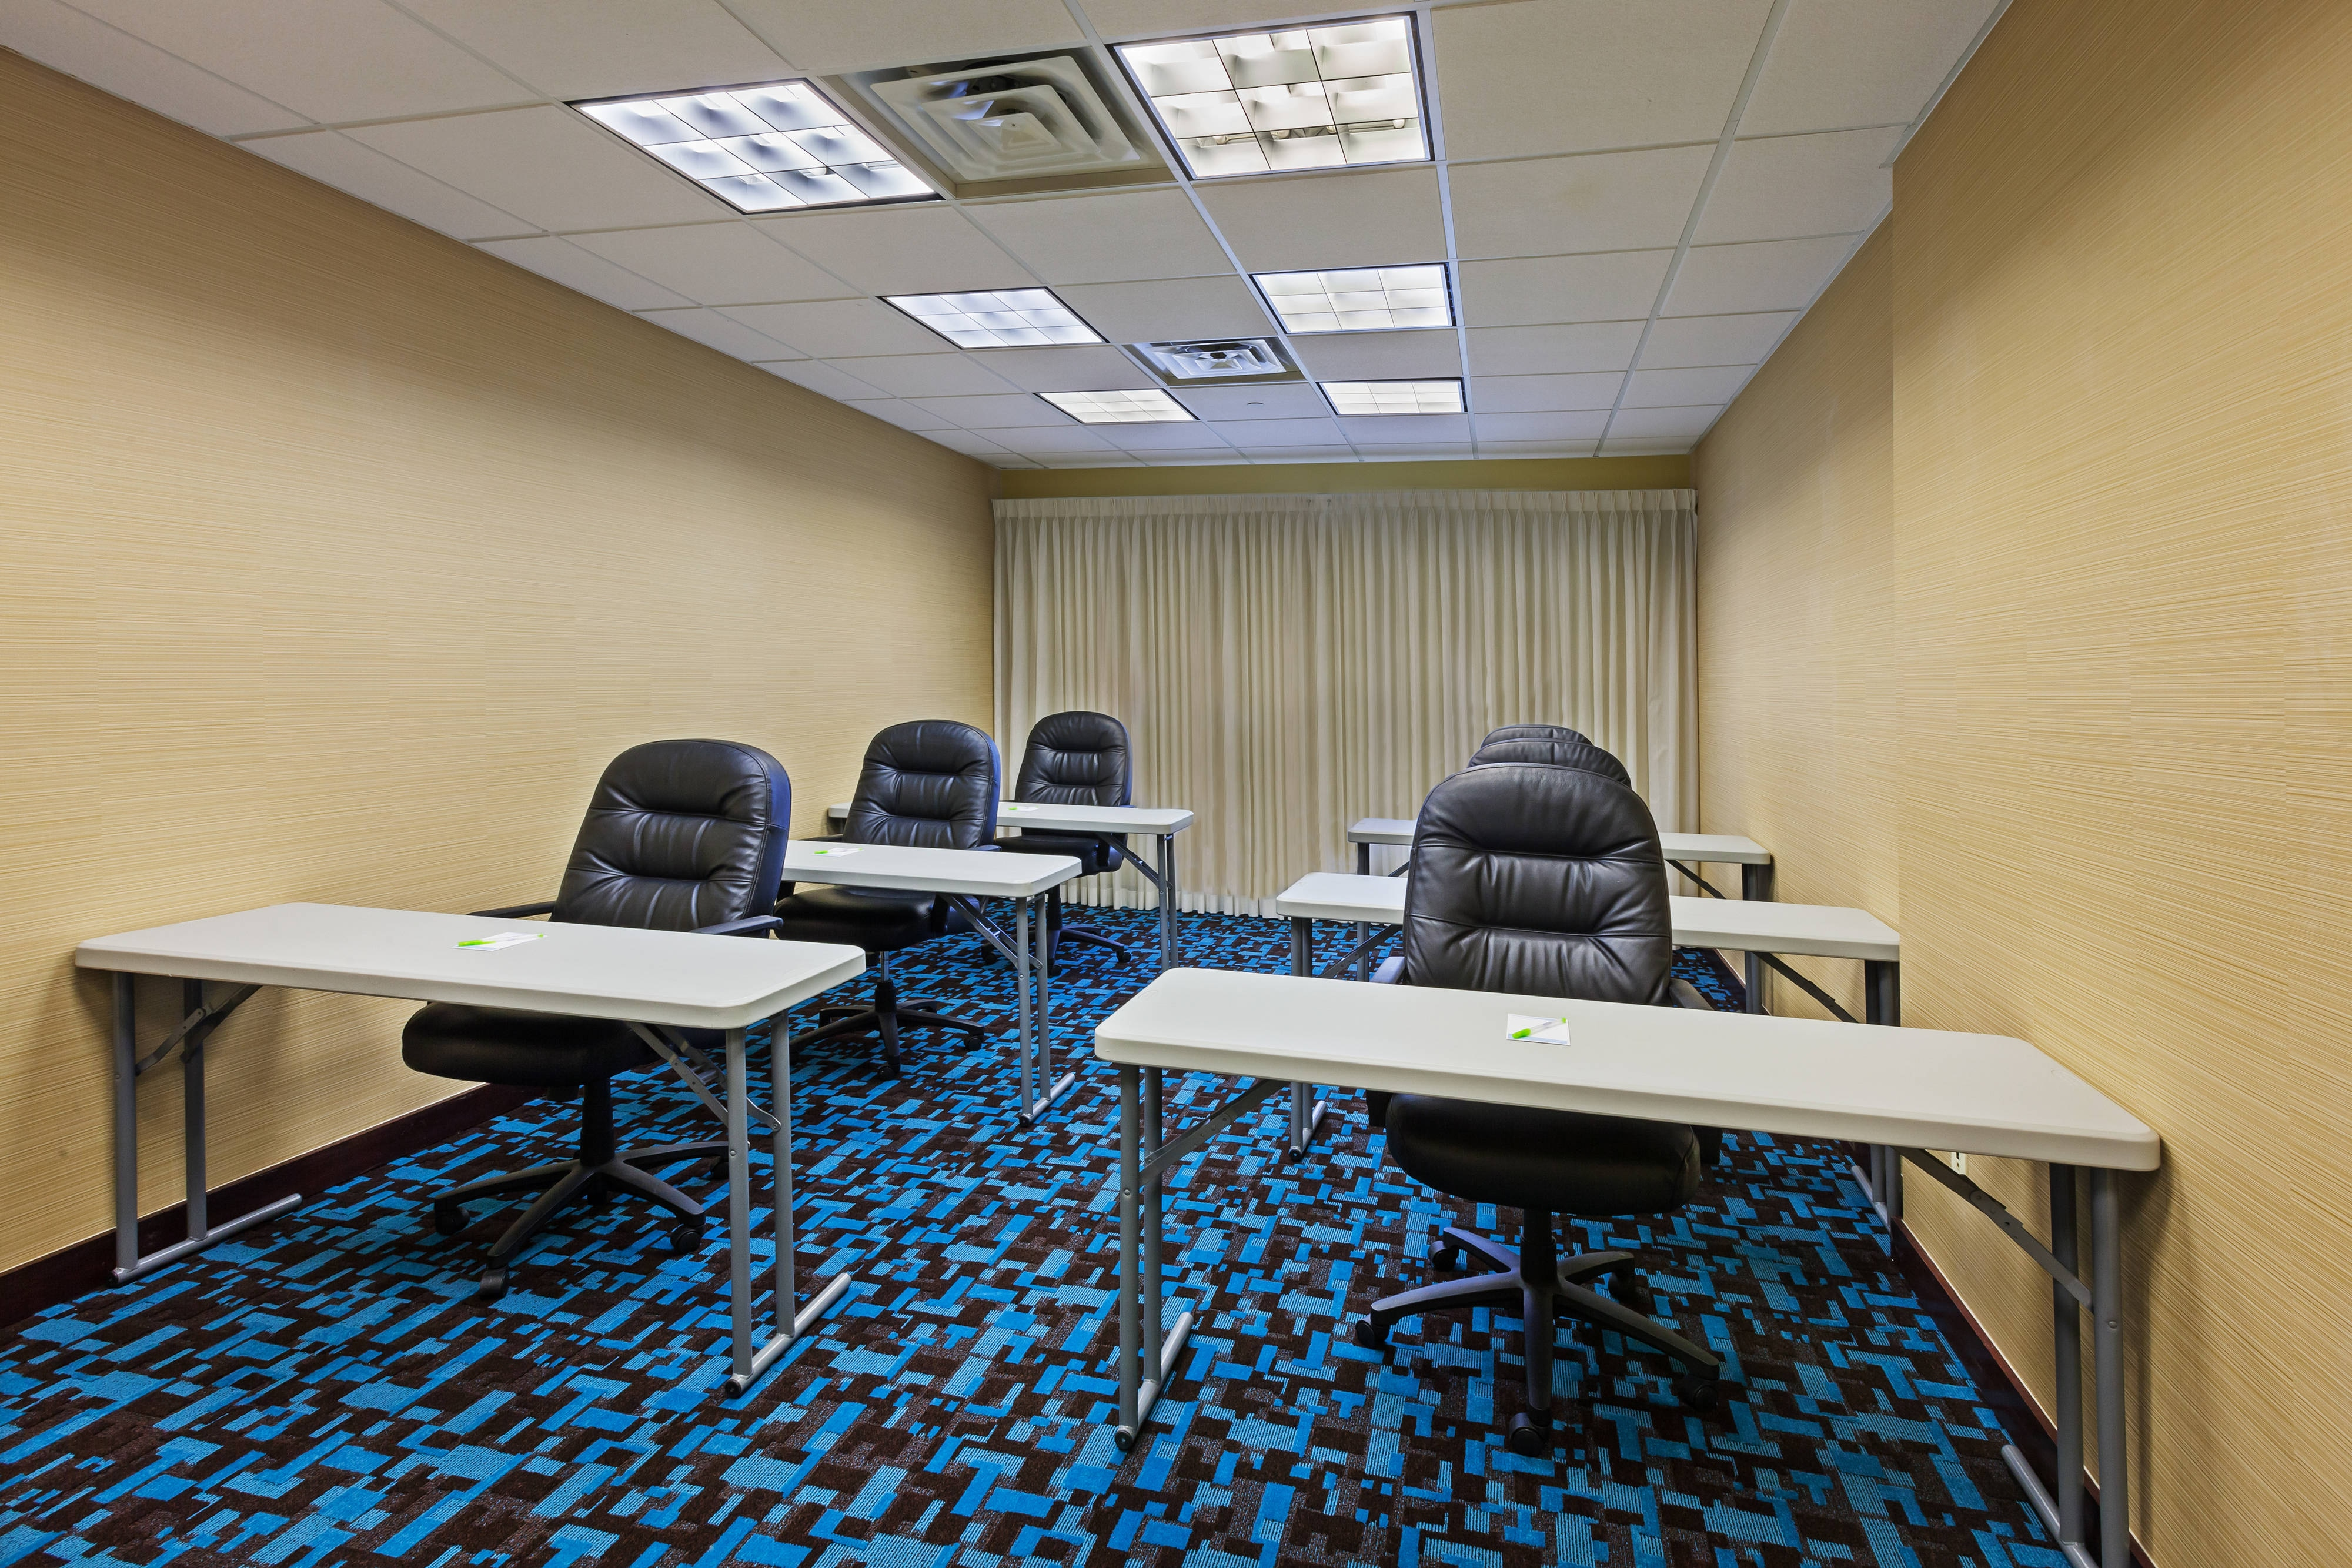 Austin Texas Hotel Meeting Room